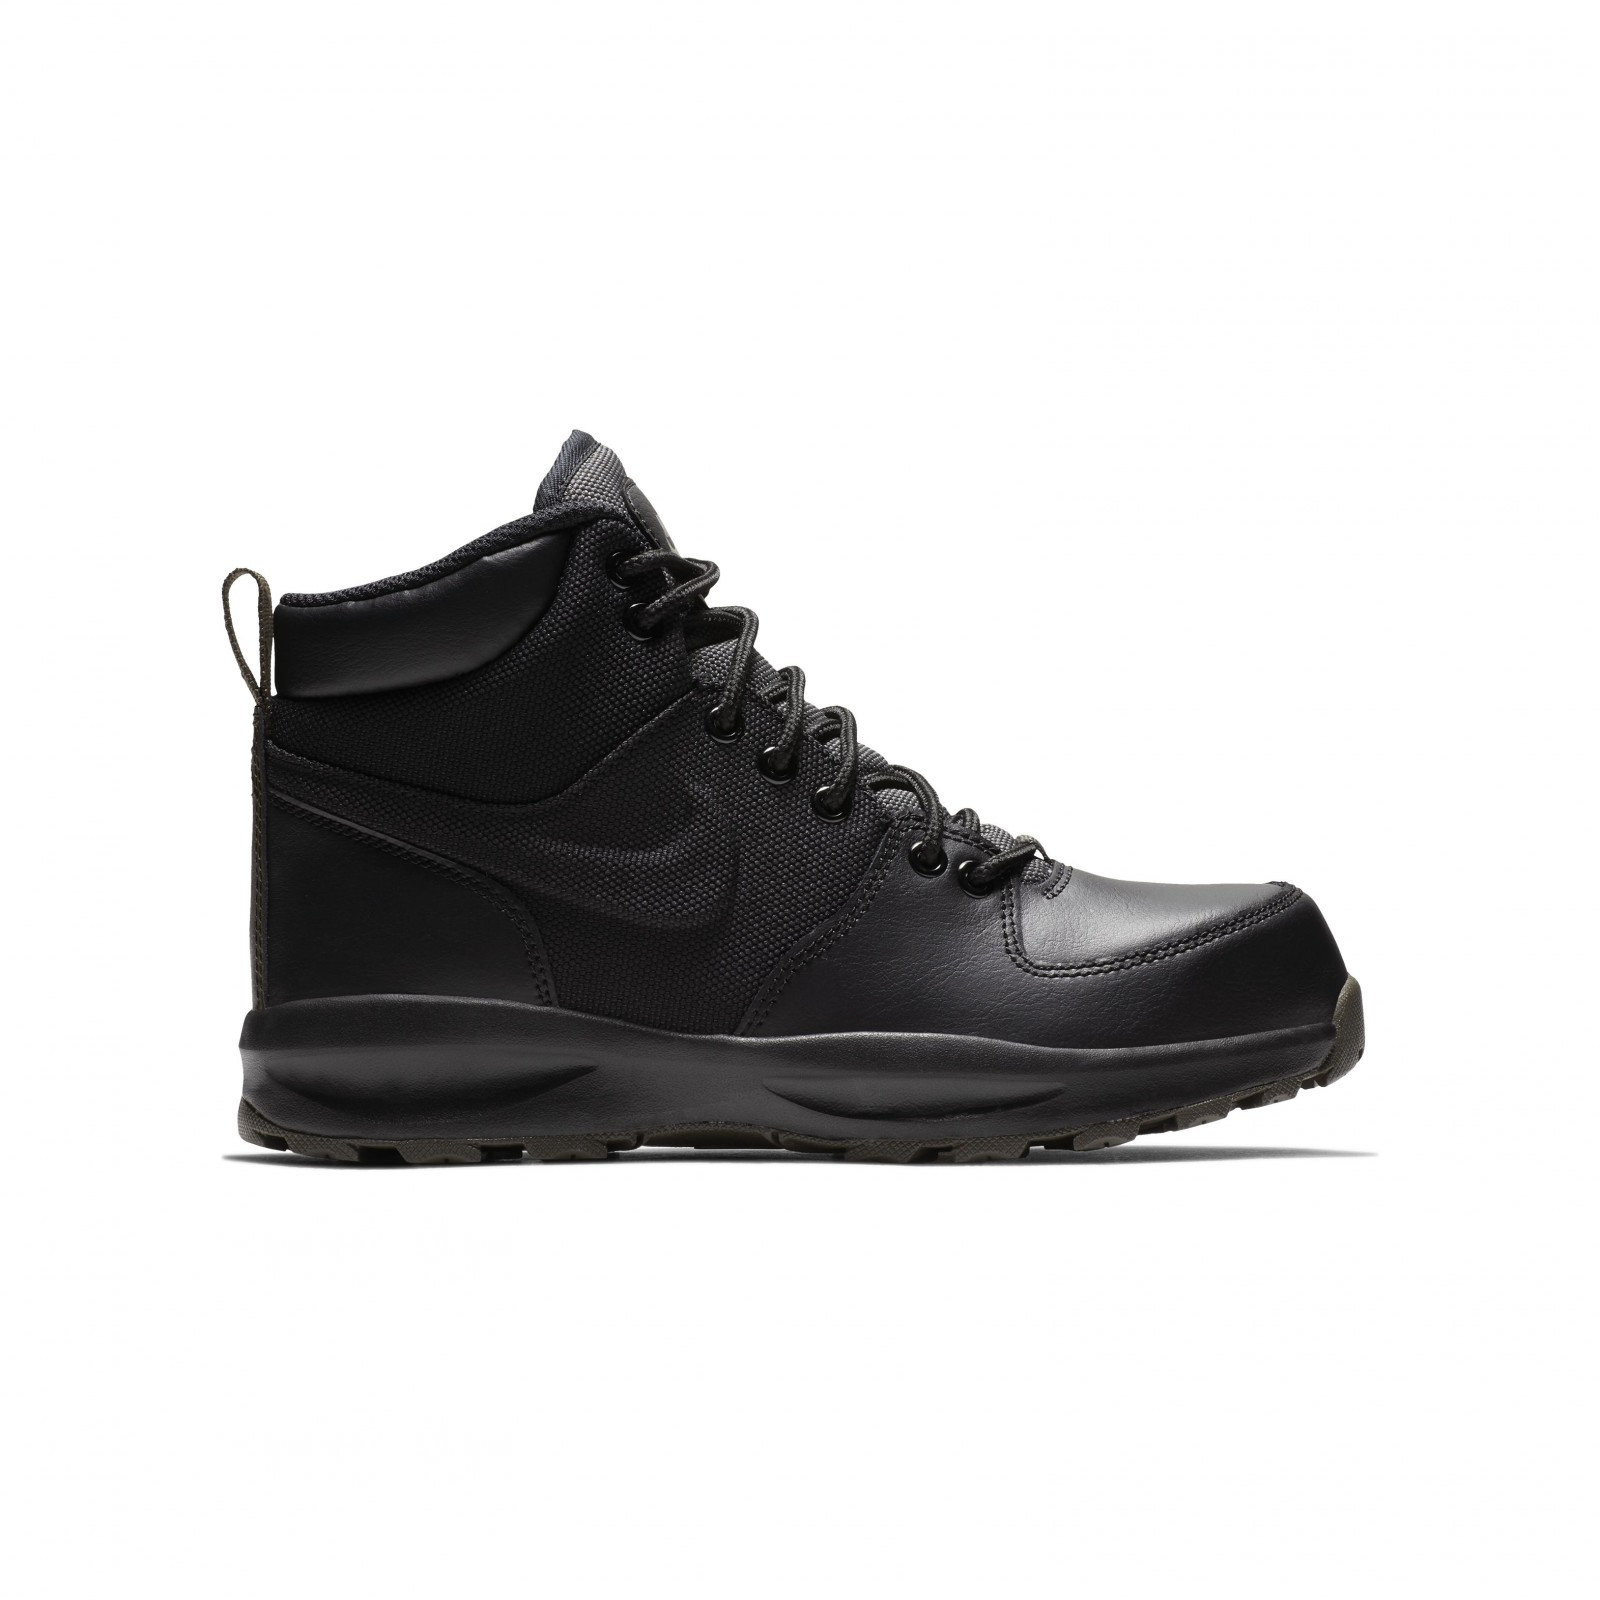 Nike manoa (gs) BLACK BLACK-NEWSPRINT - Glami.cz 6550170fa1